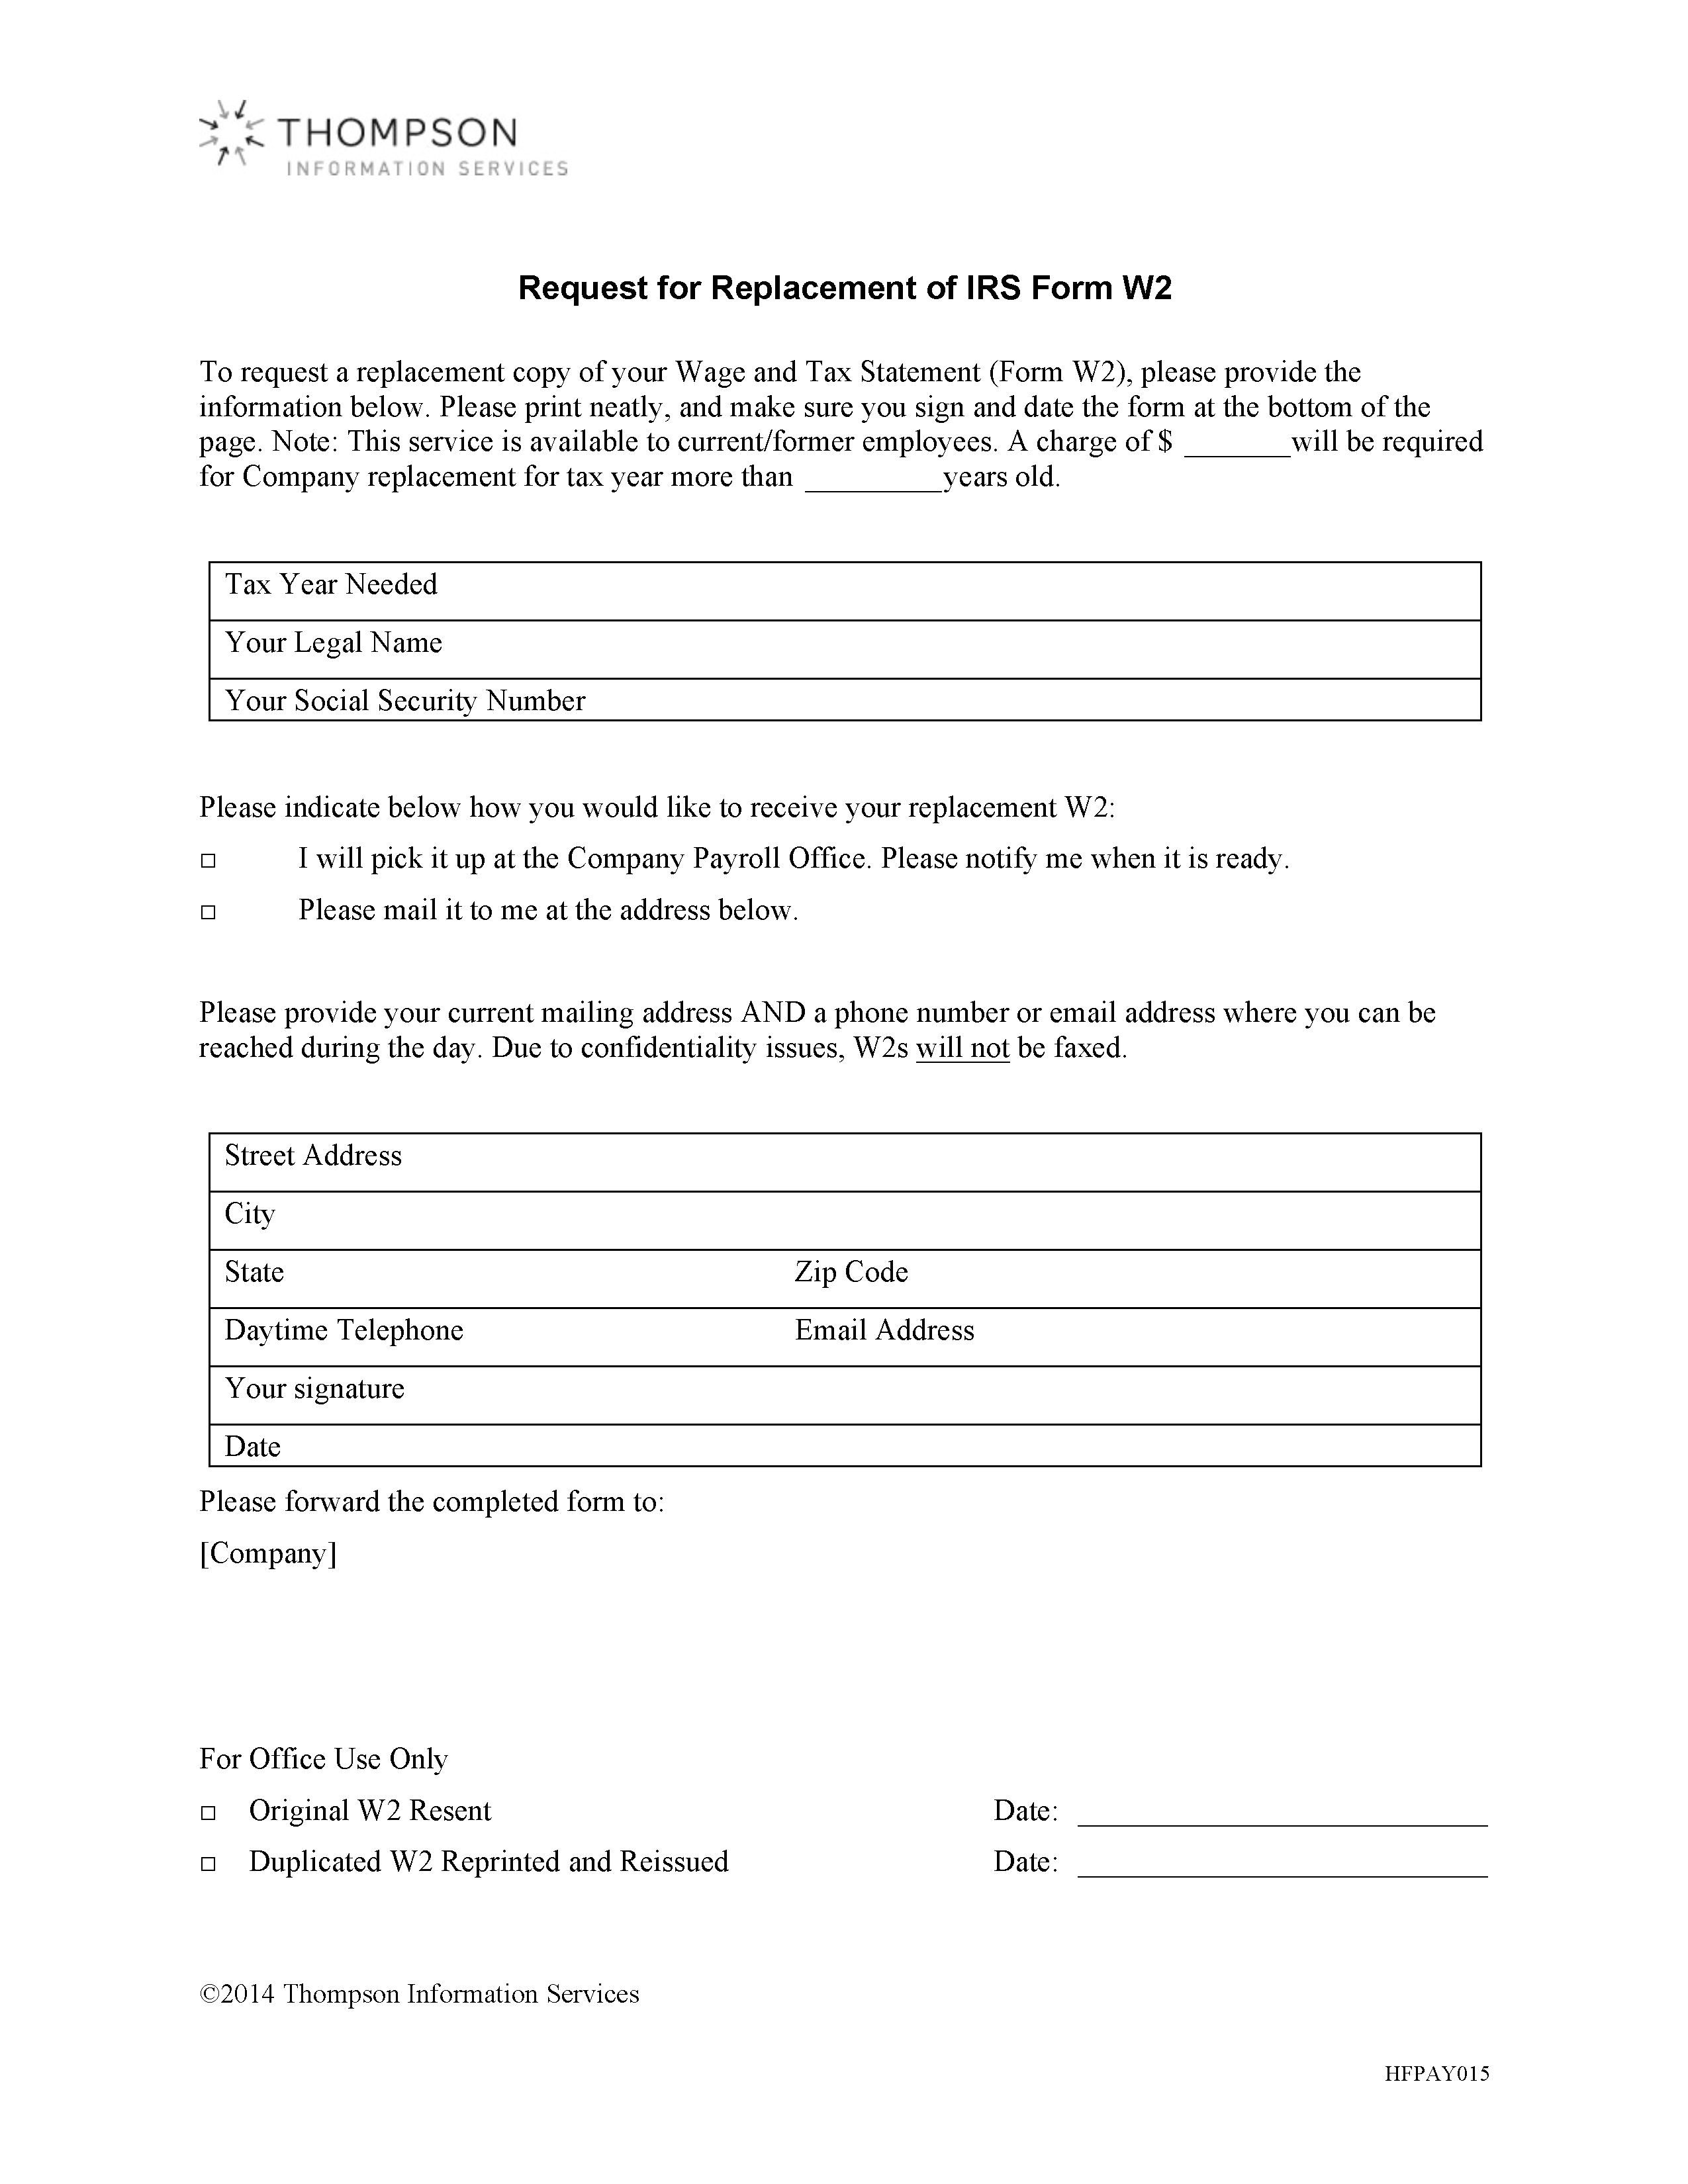 w2 form replacement  Request for Replacement of IRS Form W11   Alexander Street, a ...